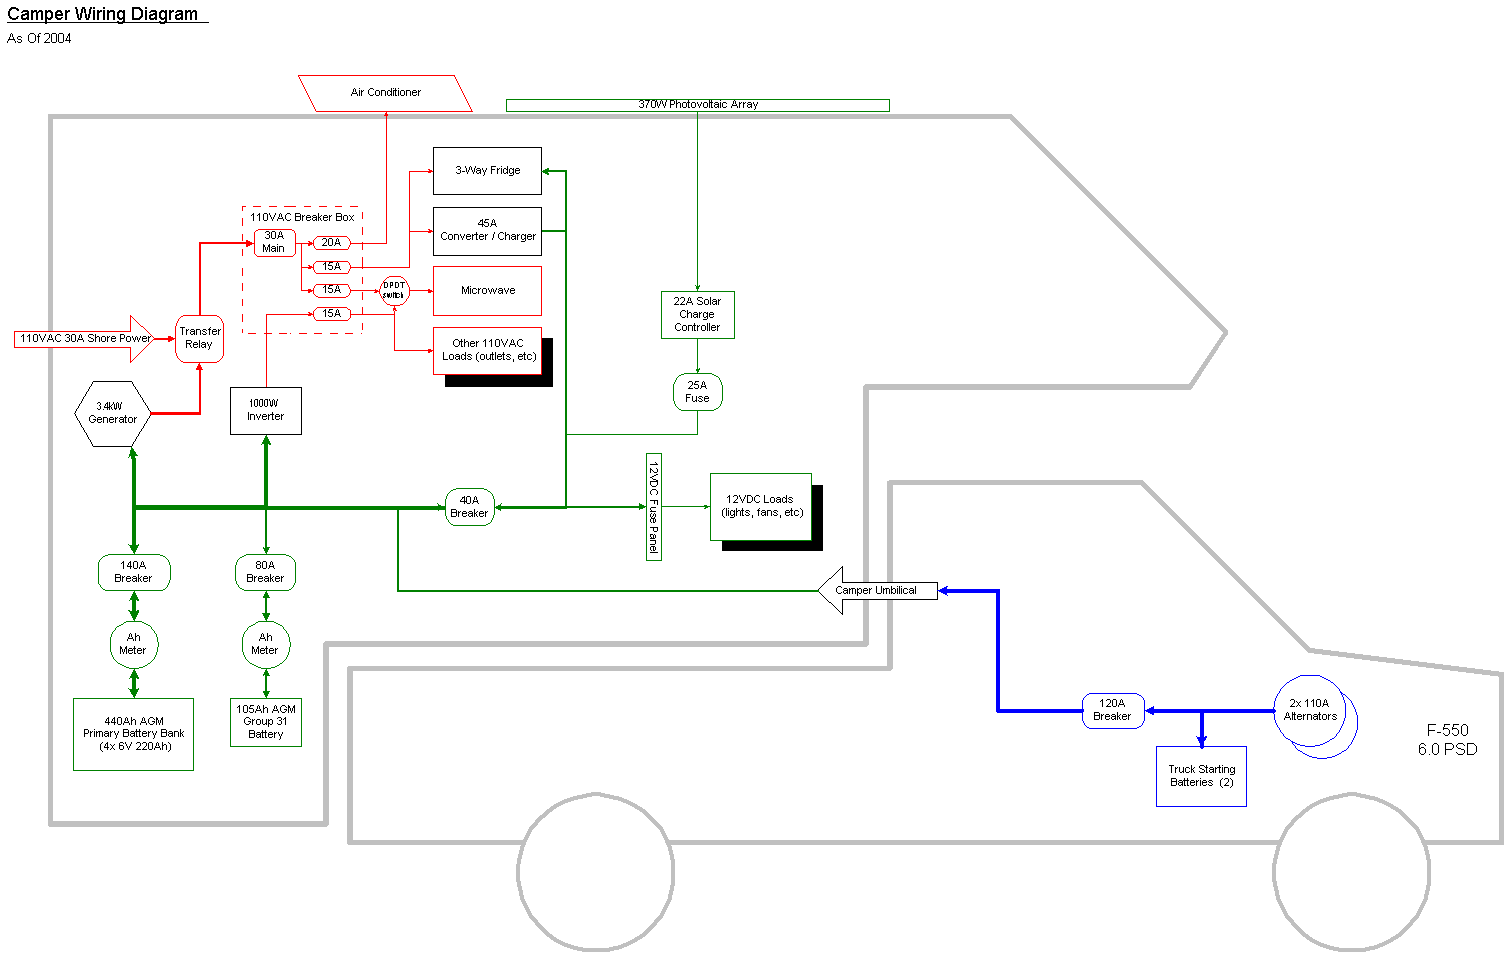 Camper Wiring Schematic Not Lossing Diagram Travel Trailer Electrical Schematics For Campers Rh Ksefanzone Com Truck